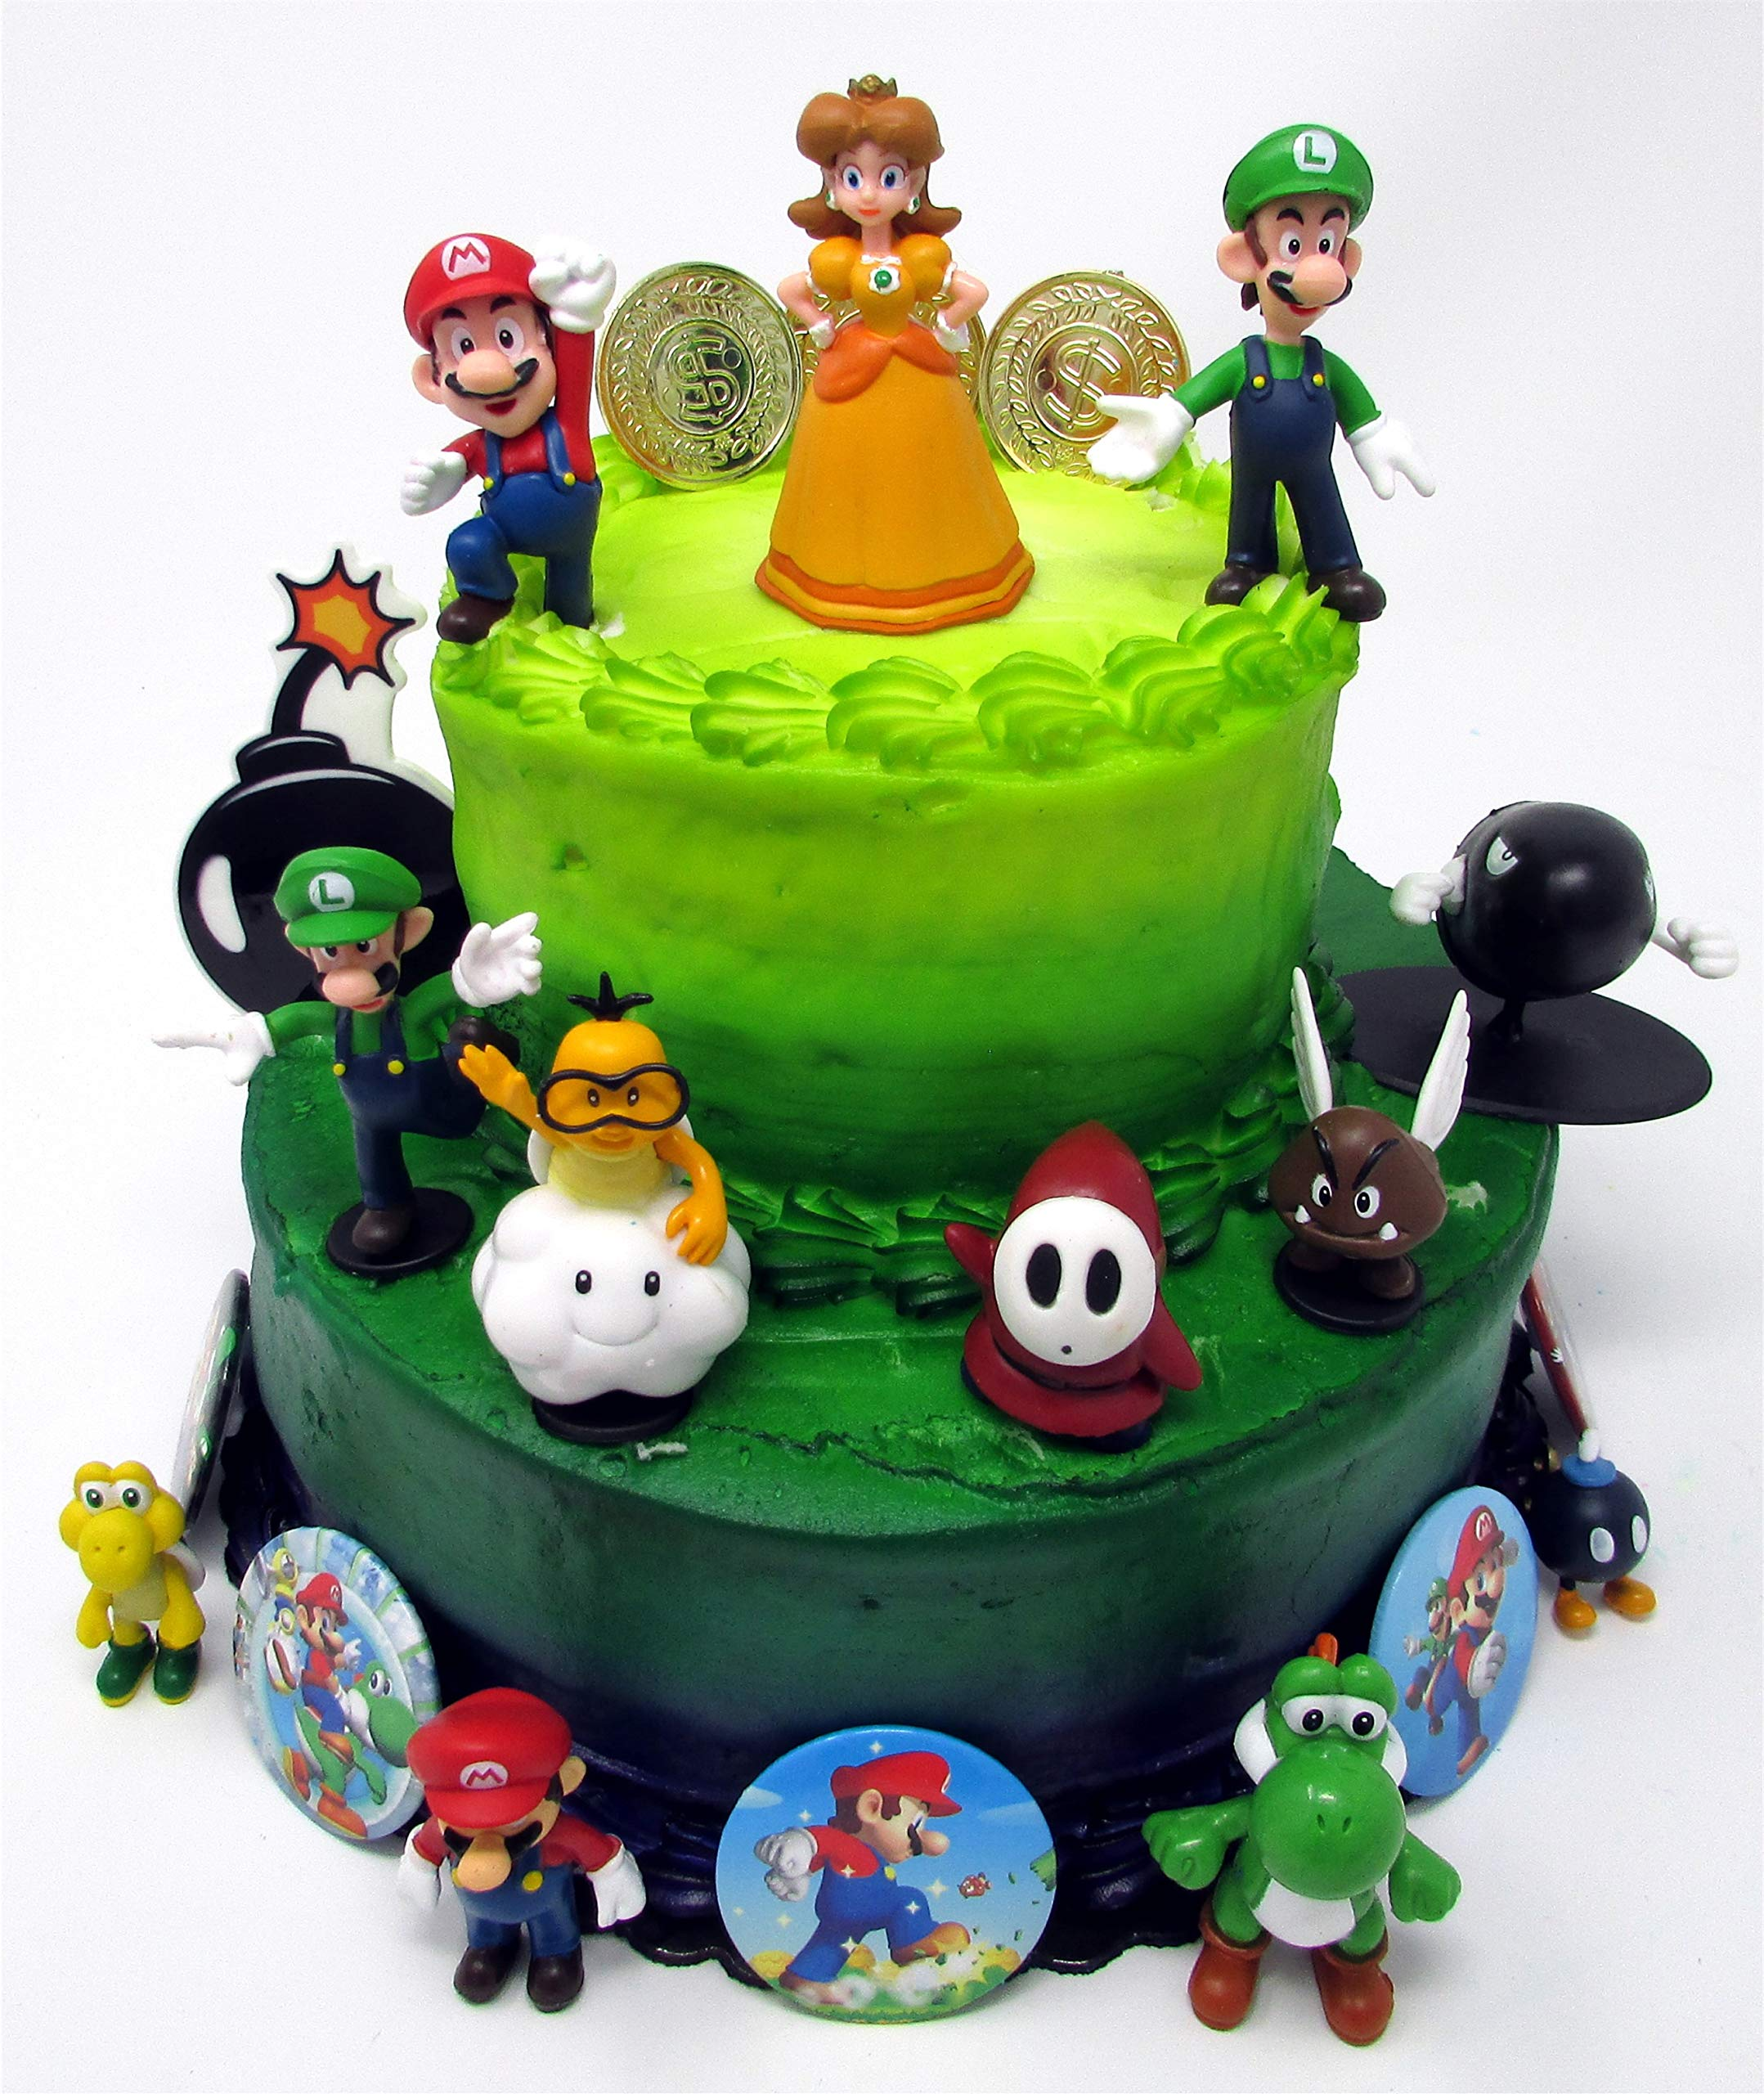 Mario Brothers Birthday Party 22 Piece Mario Birthday Cake Topper Featuring Mario, Luigi, Bullet, Toad, Mushroom, Goomba, Koopa, Shy, Bomb, Lakitu Spiny, Mario Coins, Large Bomb, and 6 Mario 1'' Decorative Buttons by Nintendo